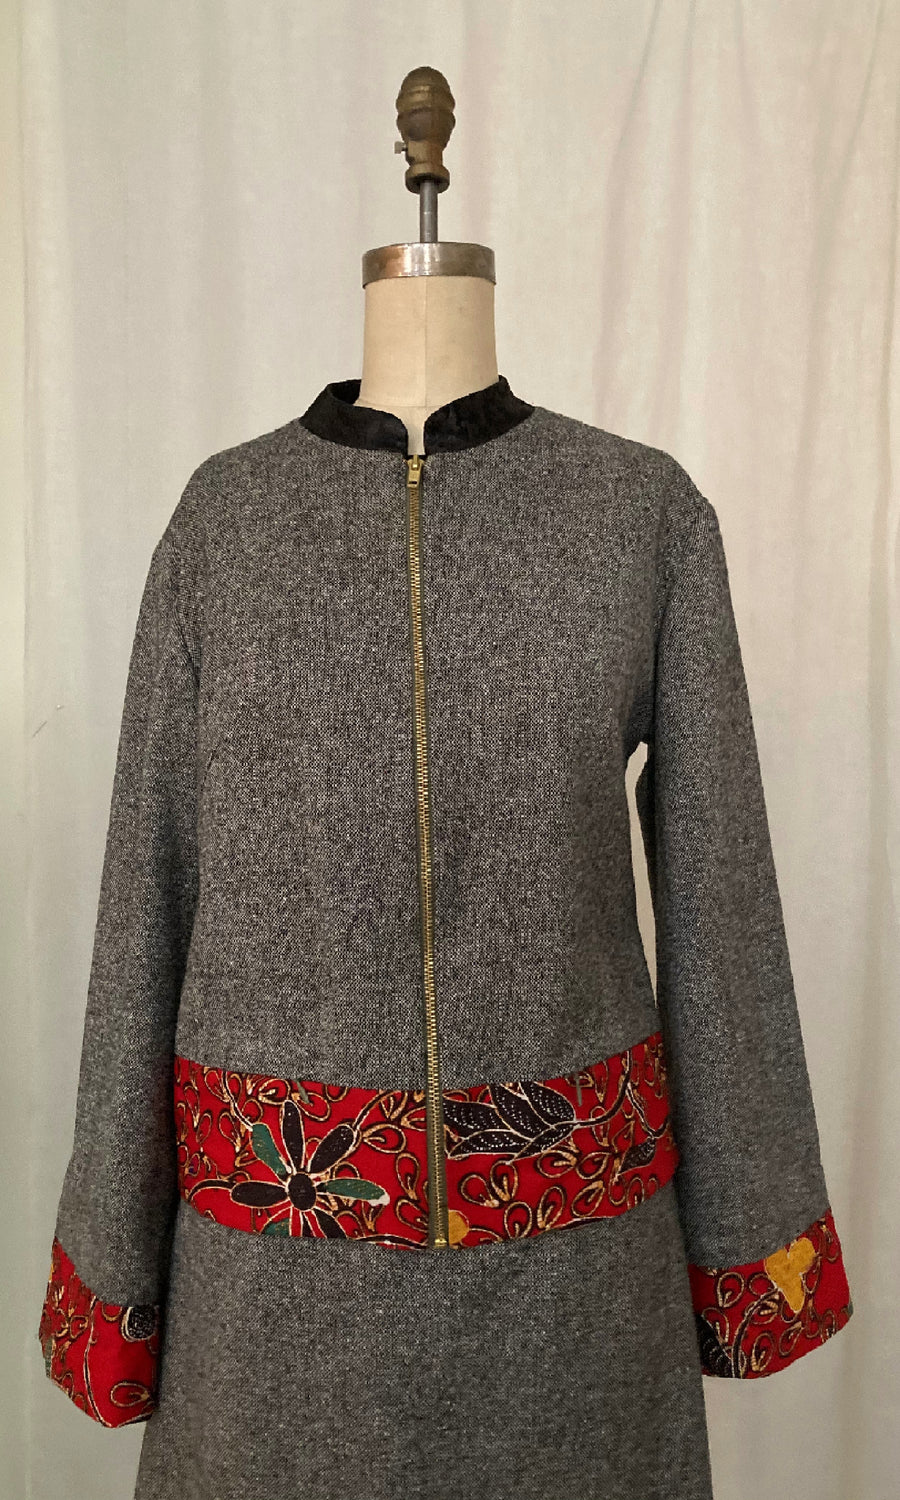 Tweed & Batik Bomber Jacket, size Medium